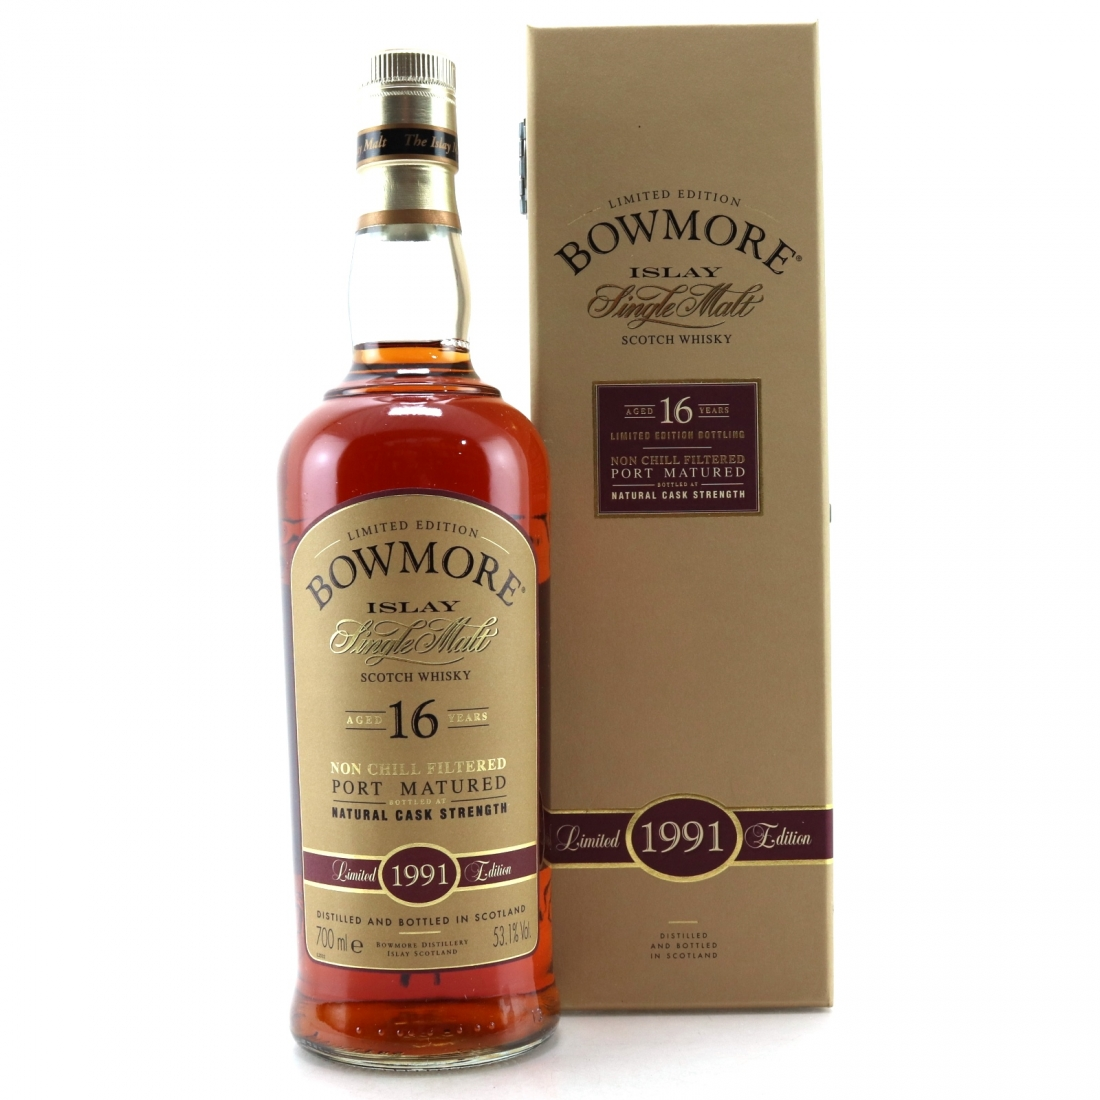 Bowmore 1991 Port Matured 16 Year Old